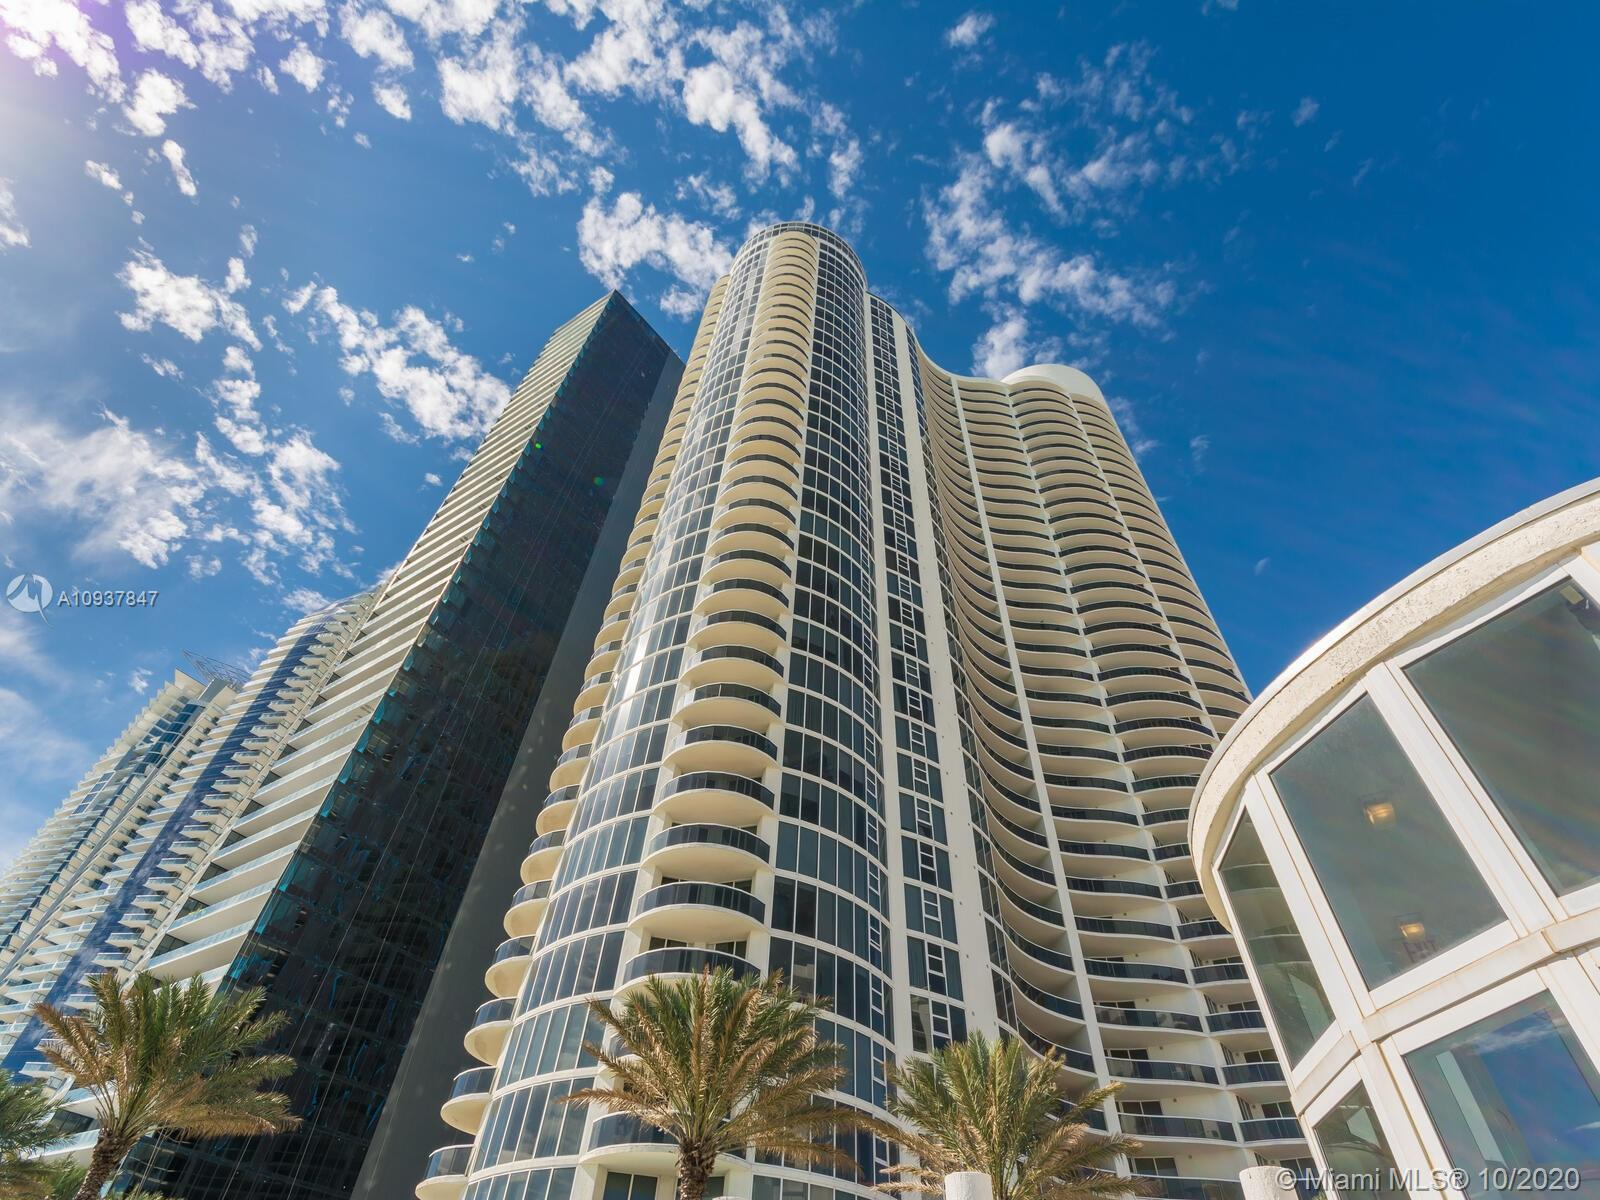 OCEANFRONT AT OCEAN 4 IN SUNNY ISLES with wraparound balcony with direct ocean views. Luxury Oceanfr